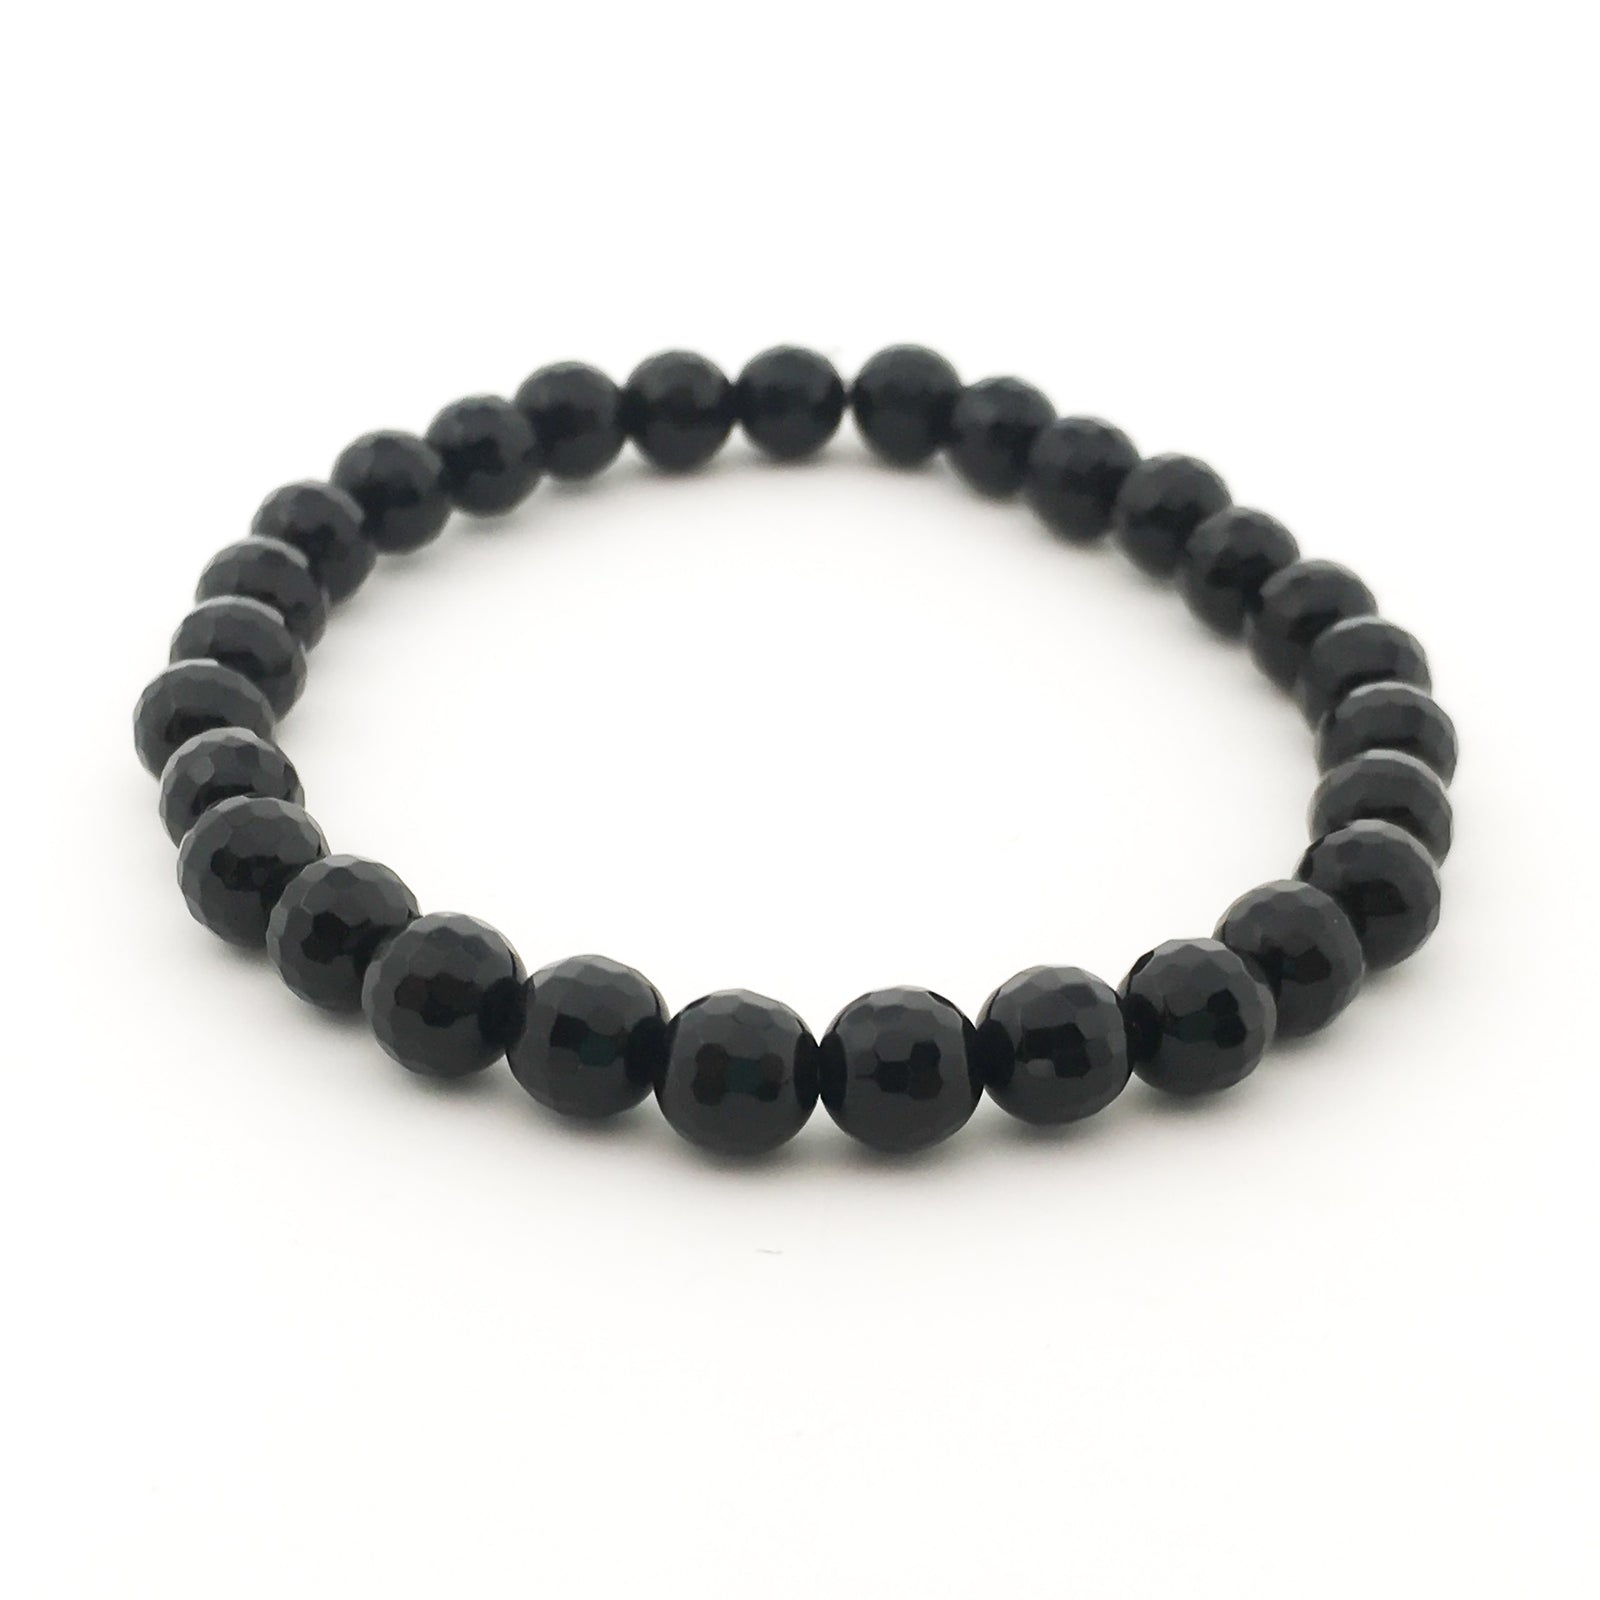 ONYX FACETED STONE BRACELET | 8MM, 6MM